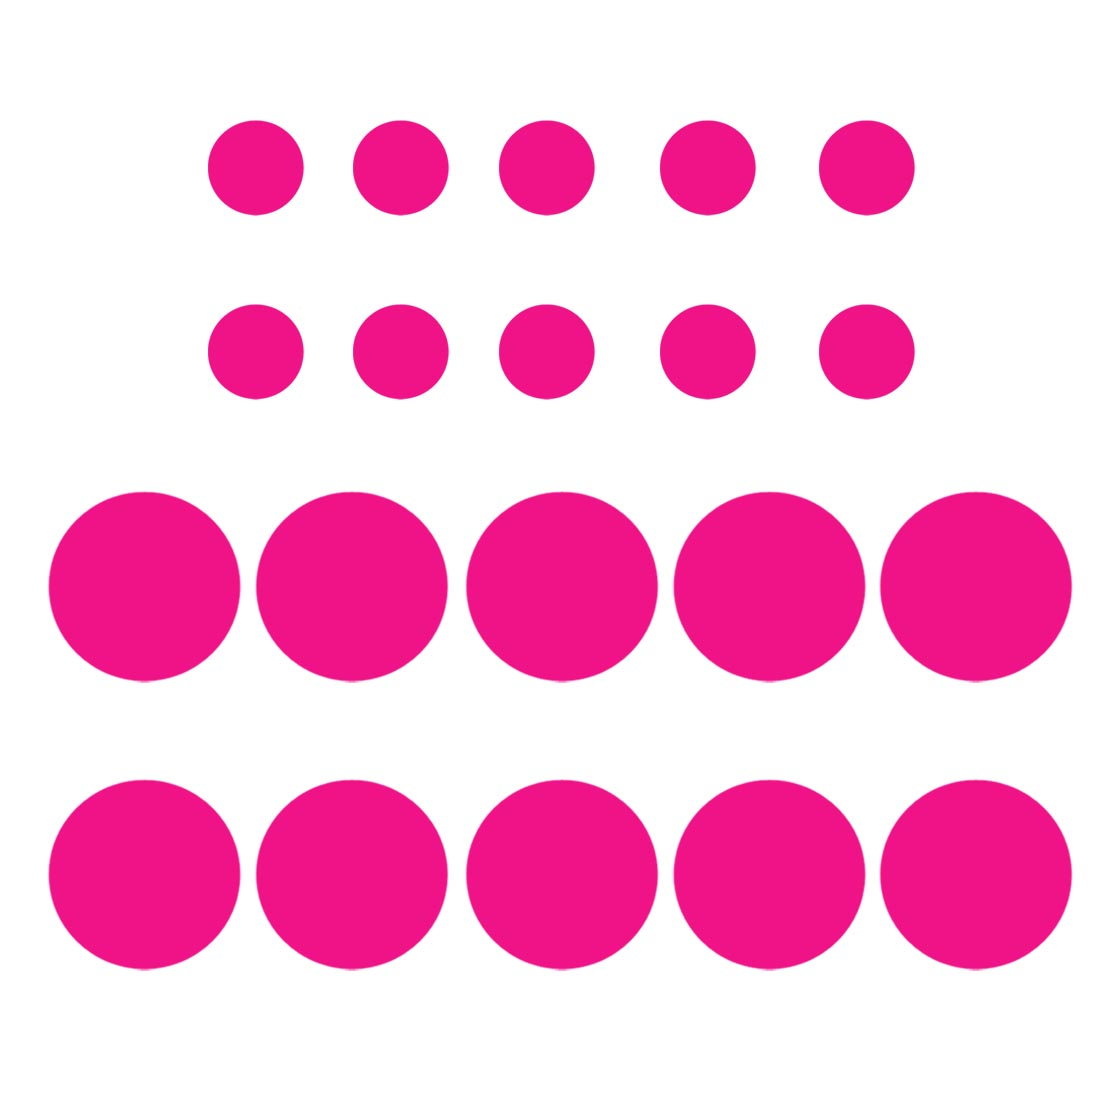 VWAQ Pack of (20) Assorted Sized Peel and Stick Hot Pink Polka Dots Wall Decals - VWAQ Vinyl Wall Art Quotes and Prints